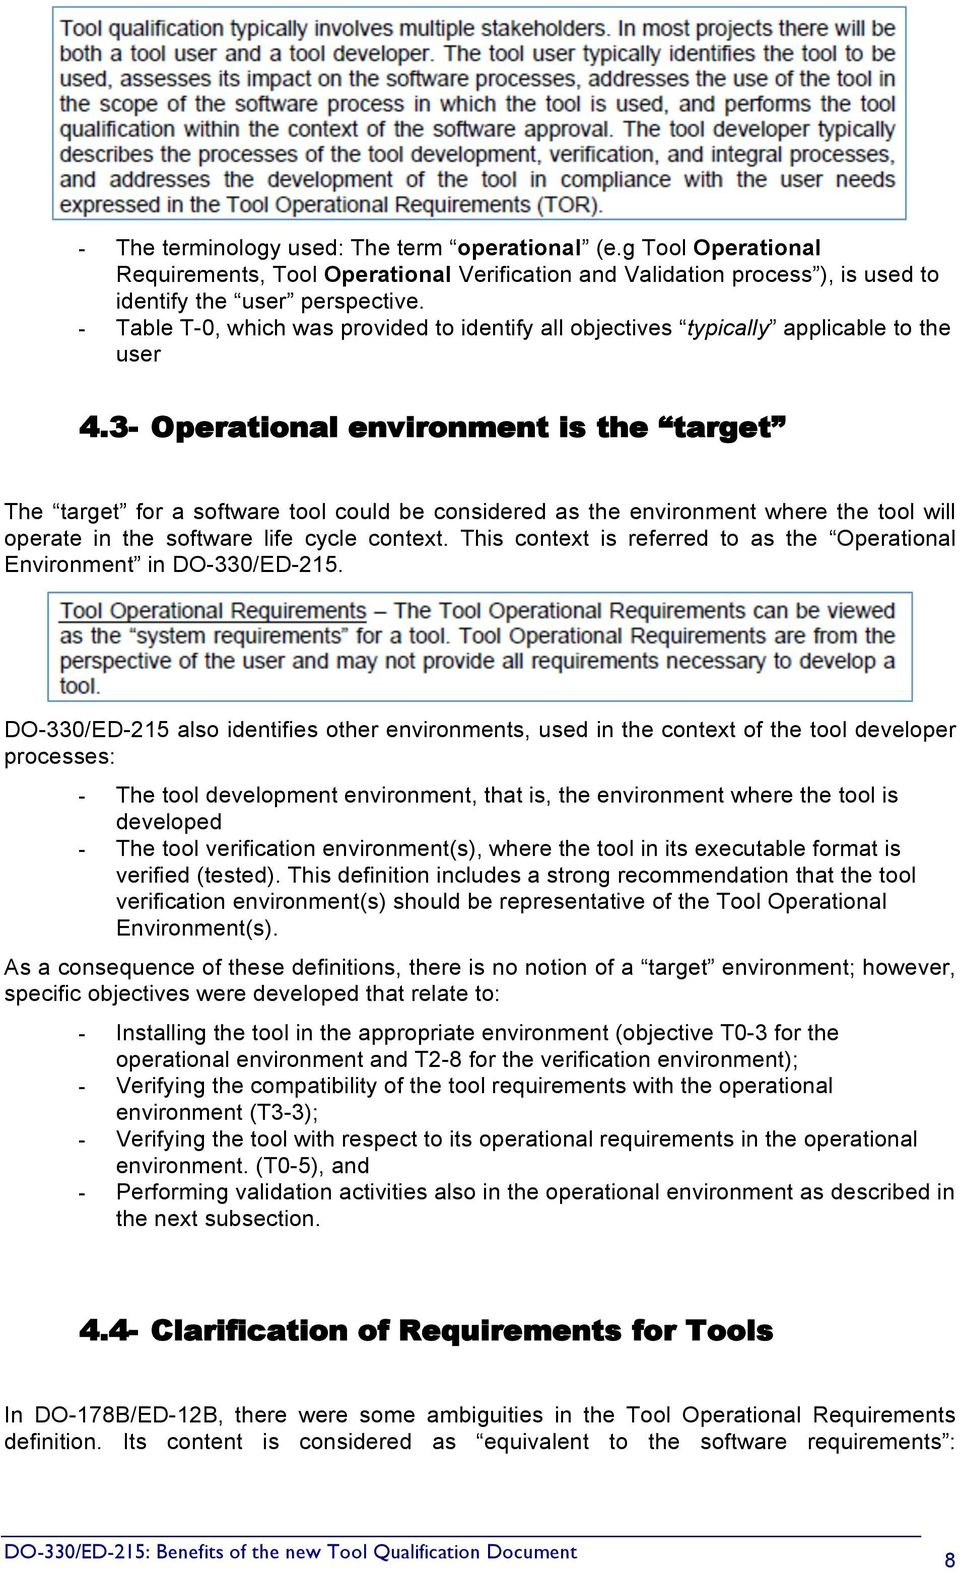 3- Operational environment is the target The target for a software tool could be considered as the environment where the tool will operate in the software life cycle context.